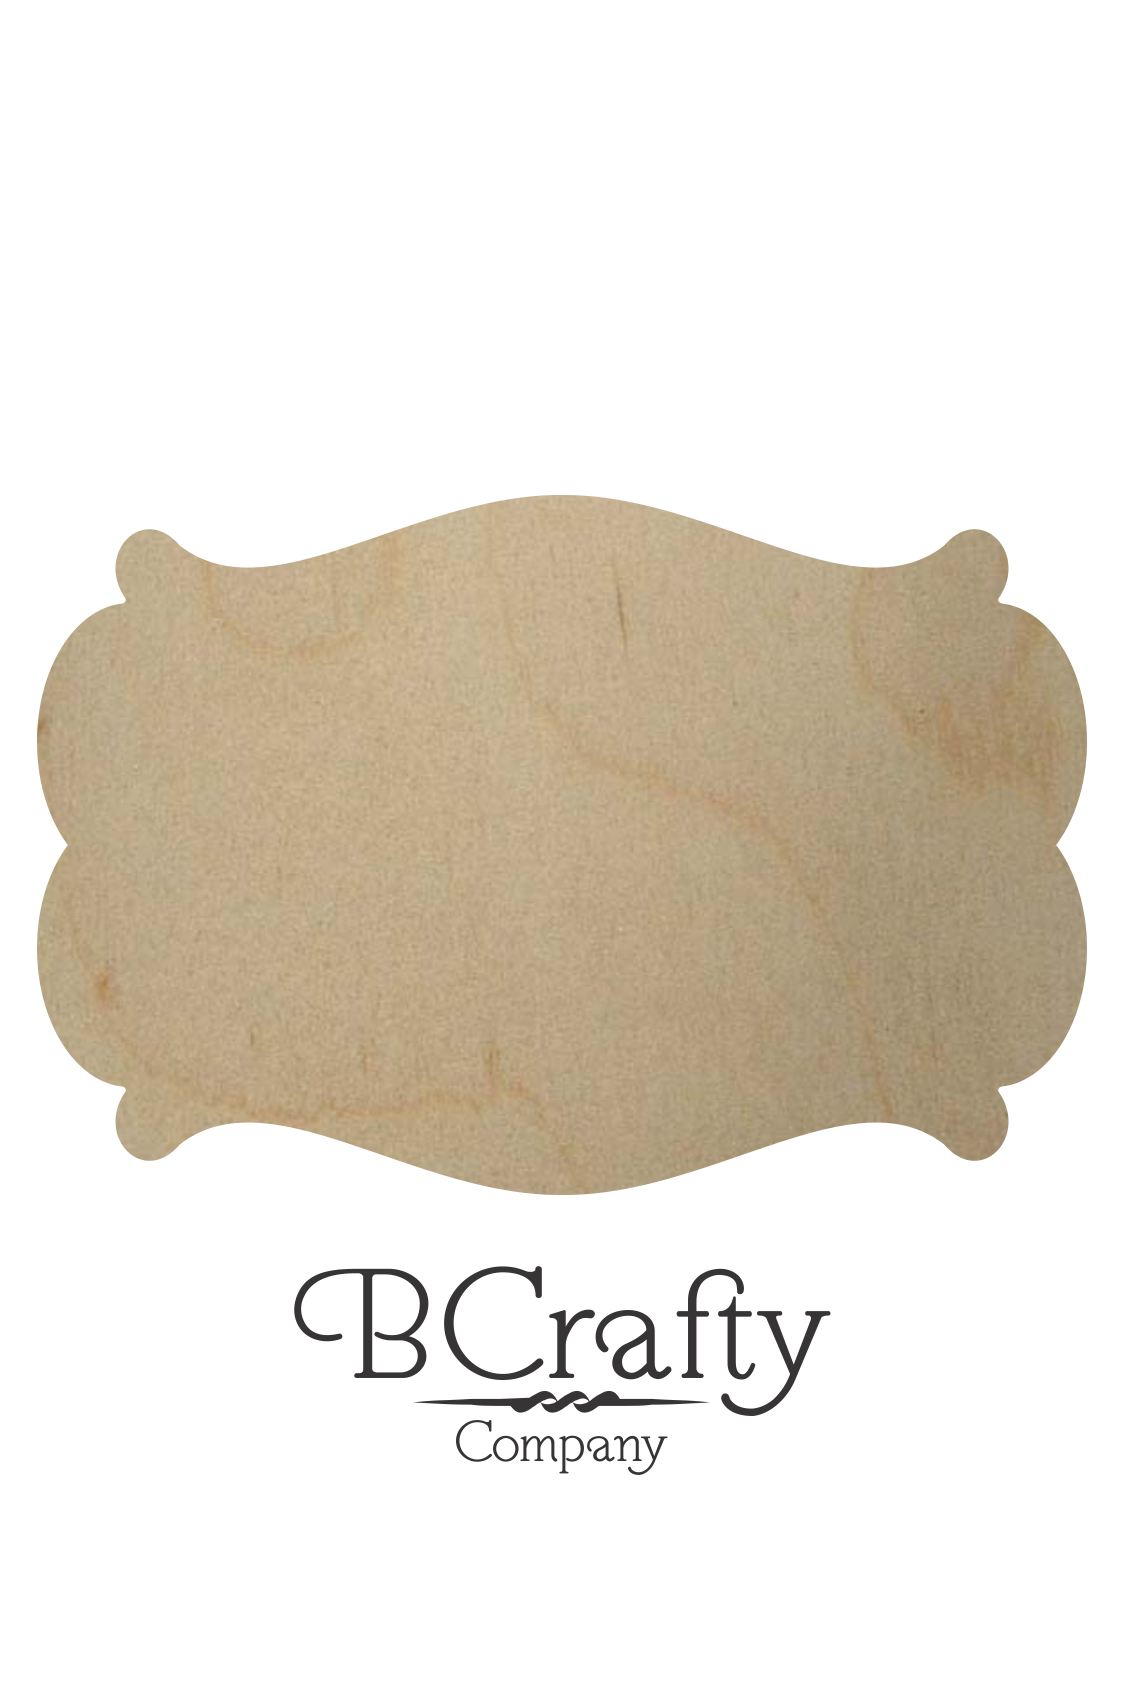 Blank wooden sign png. Wood craft